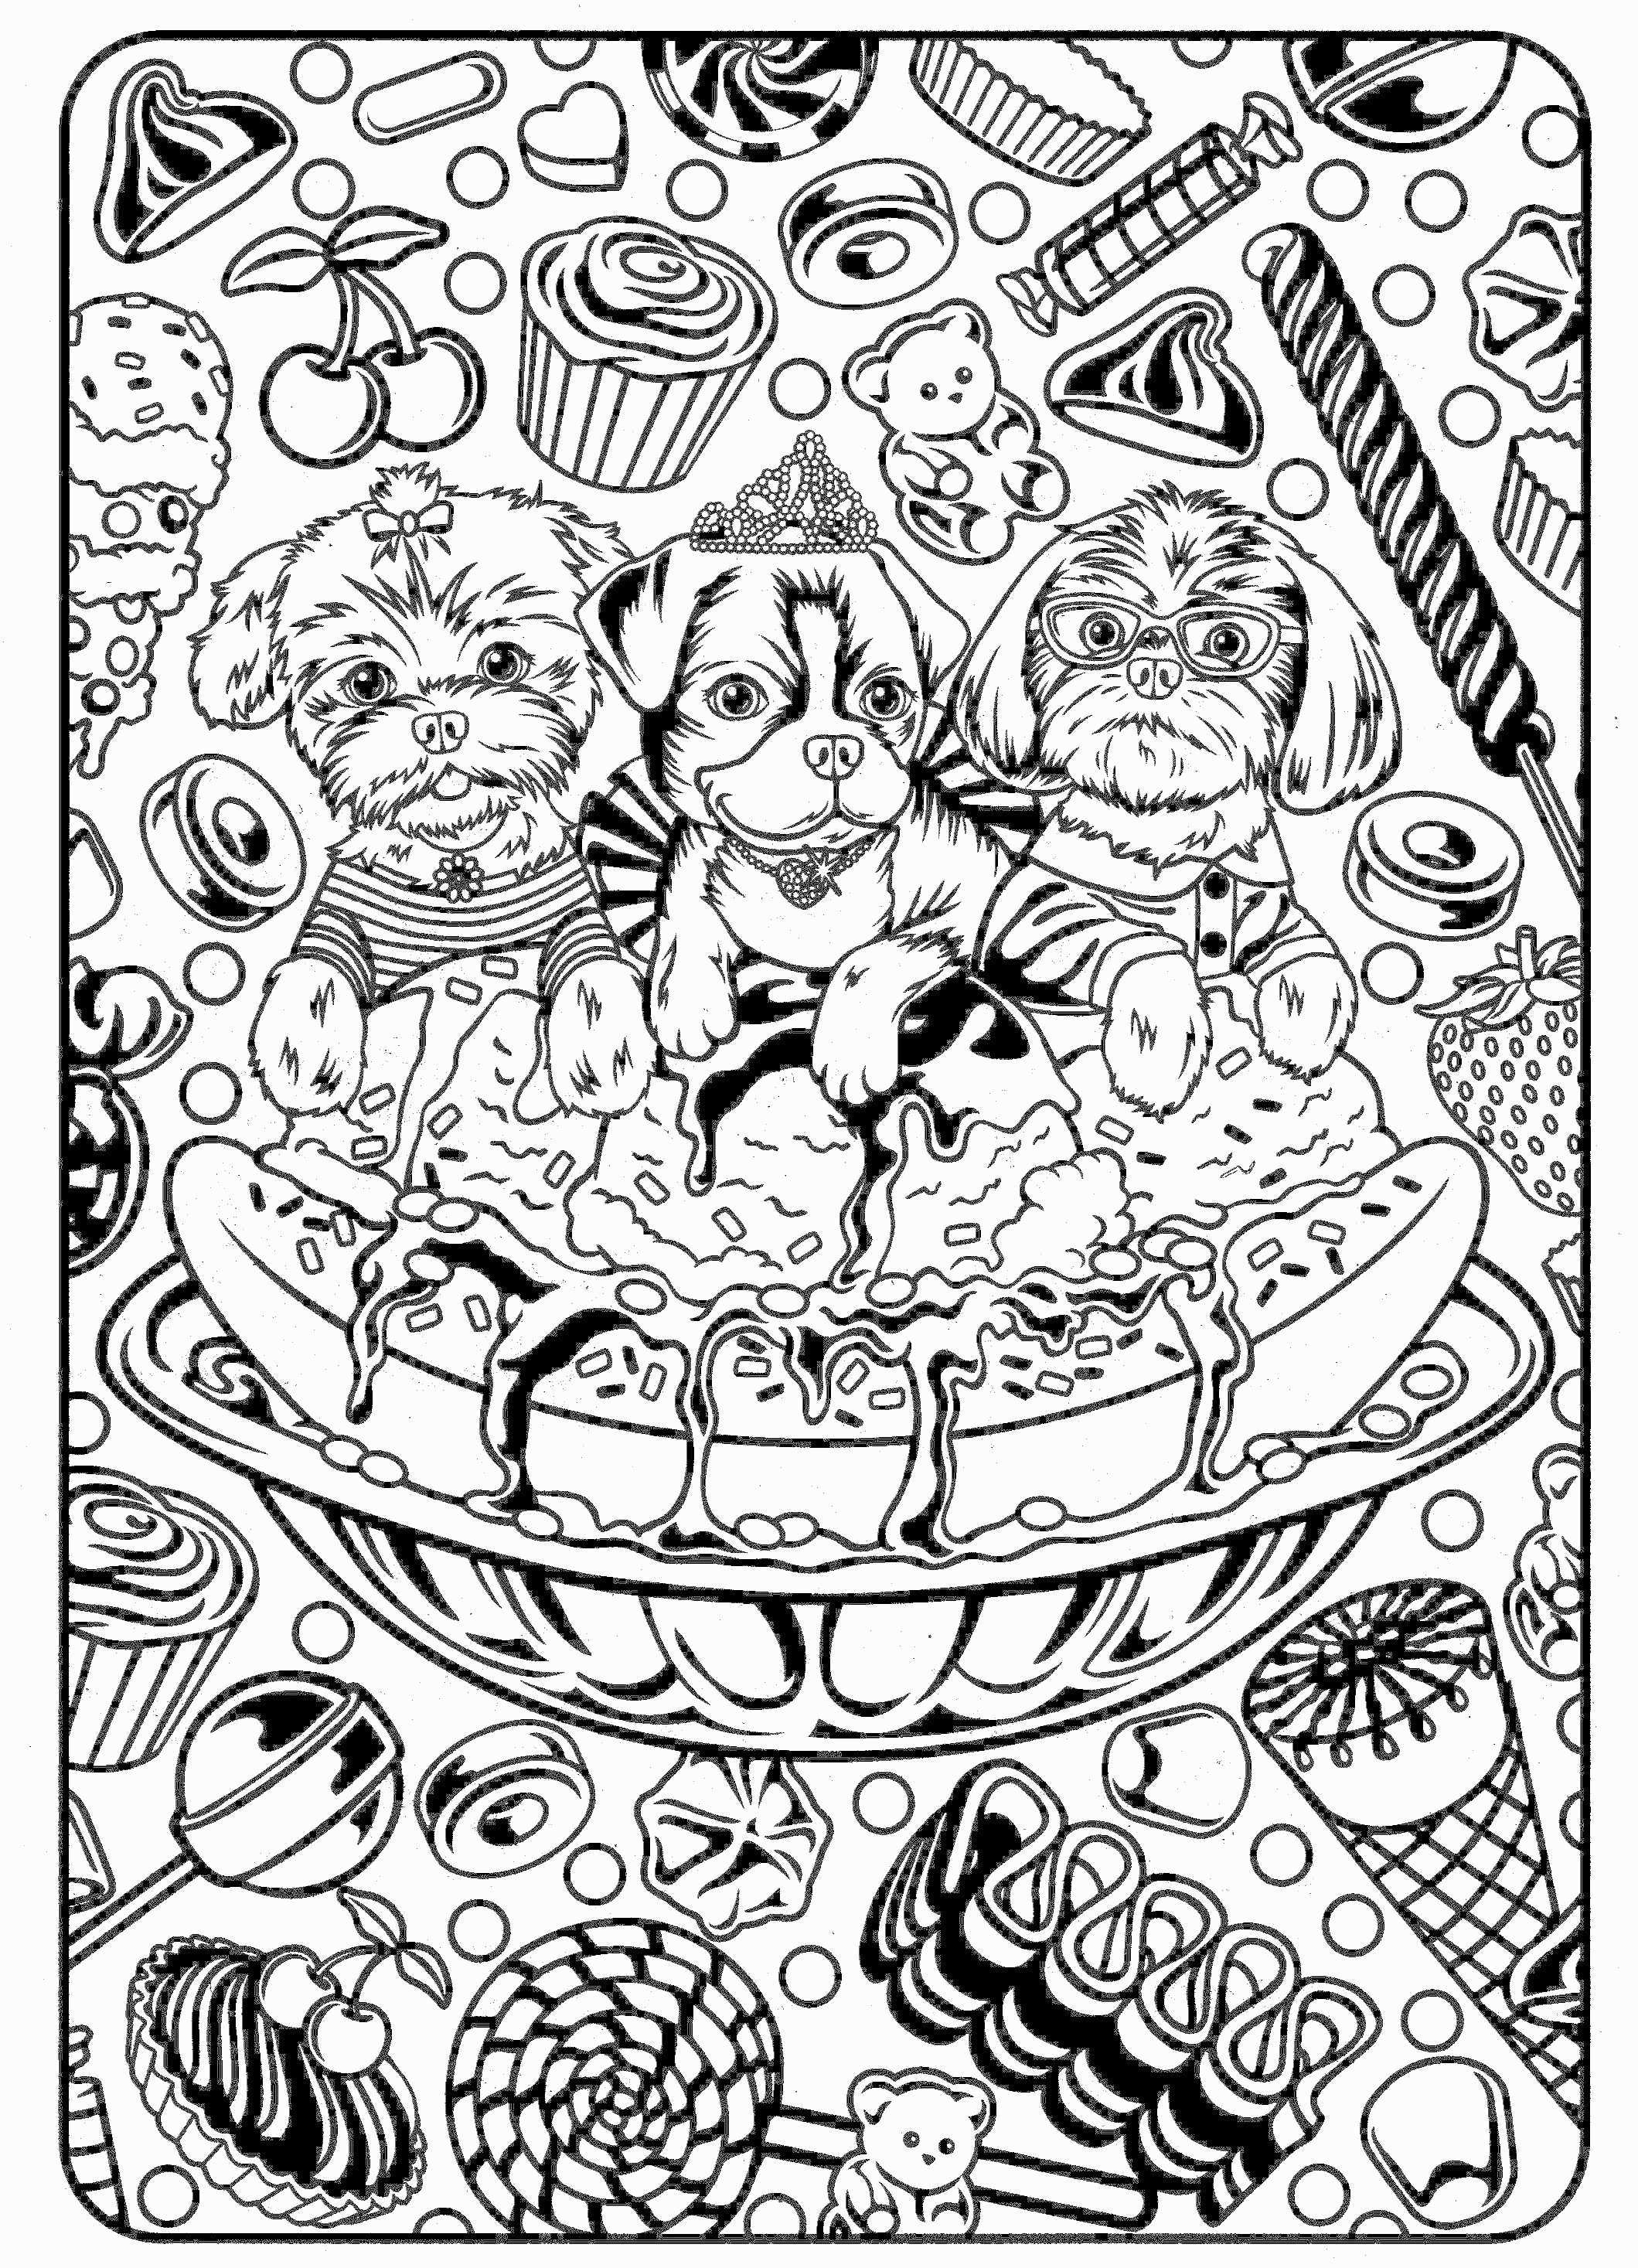 Coloring Pages : Remarkable Stress Relief Coloring Pages ...